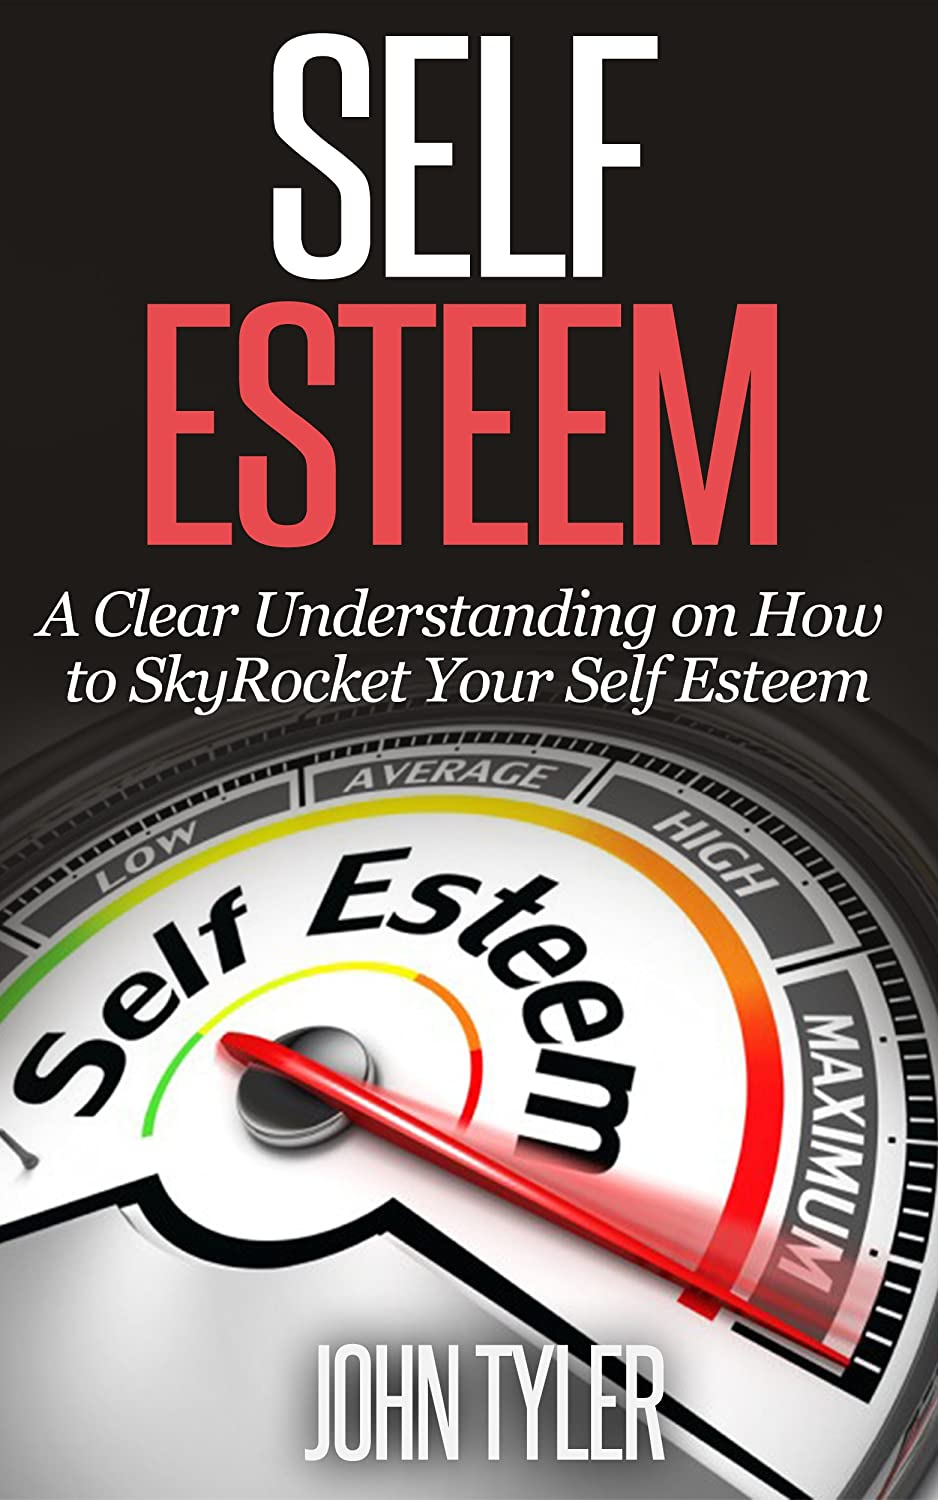 Self Esteem: A Clear Understanding on How to Skyrocket Your Self Esteem